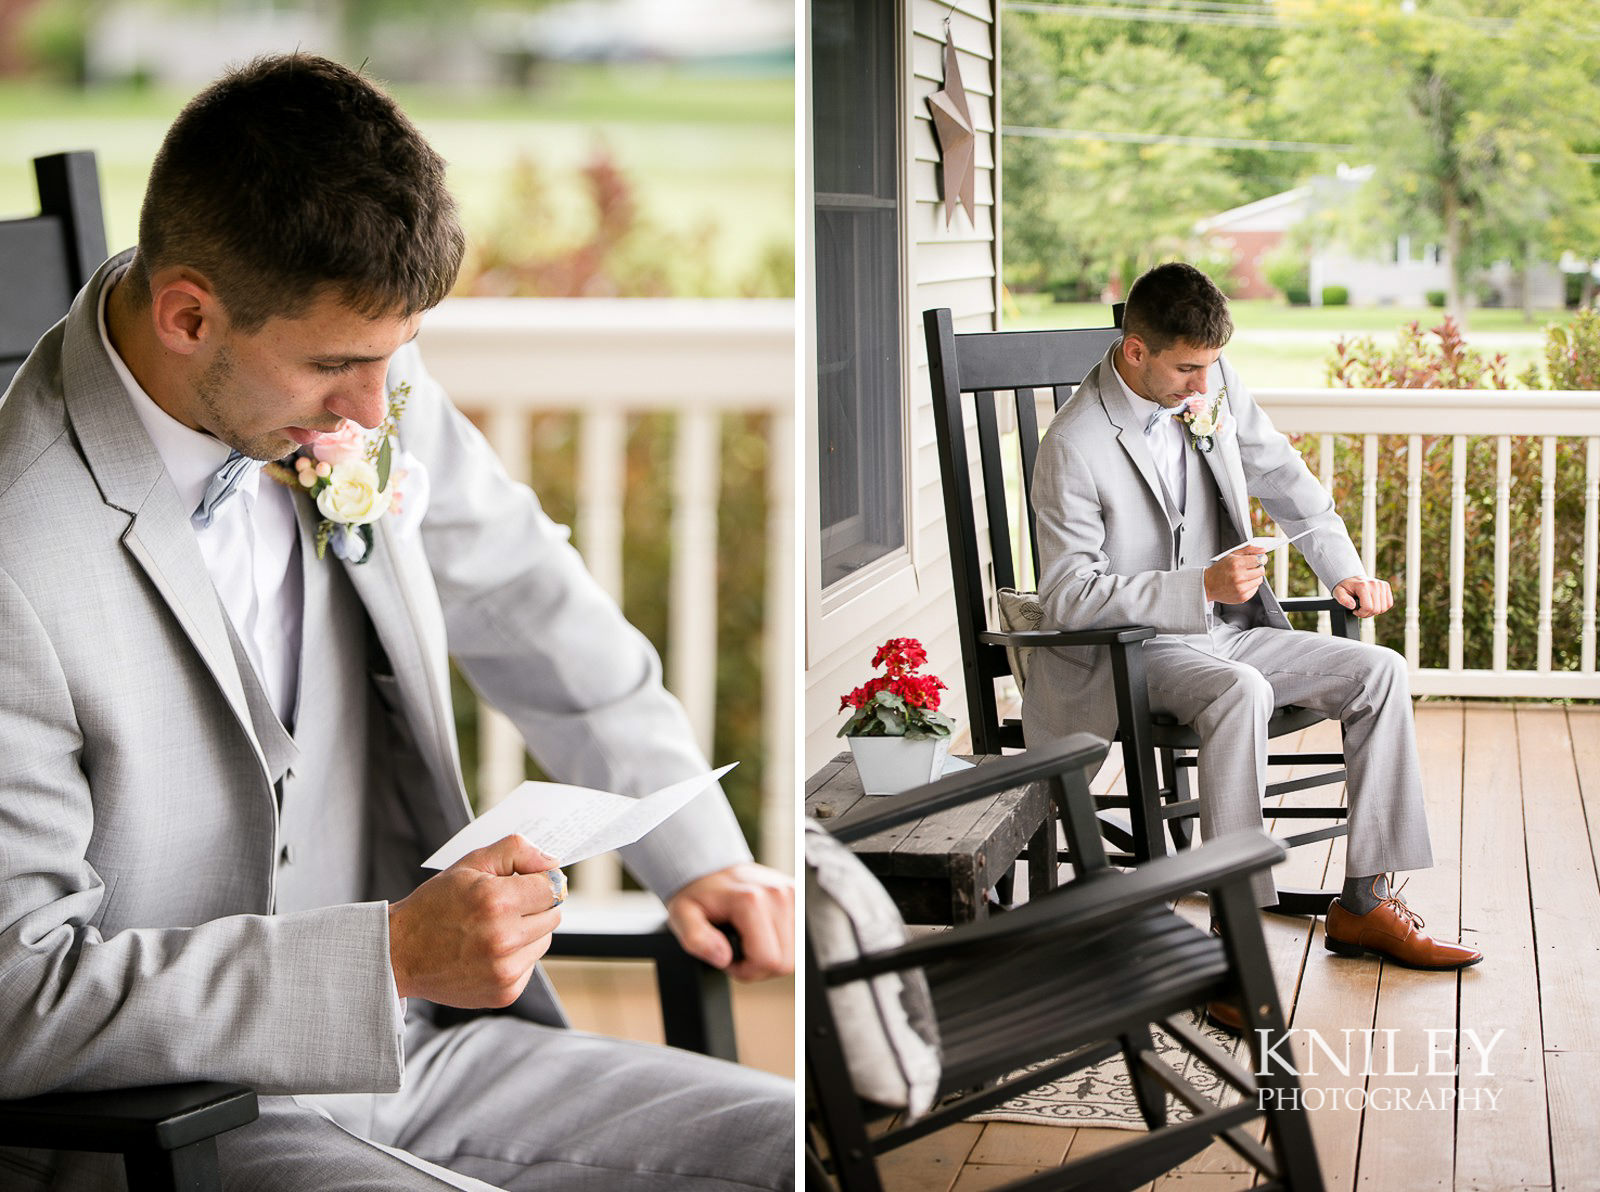 007 Buffalo NY wedding - Preparation pictures.jpg